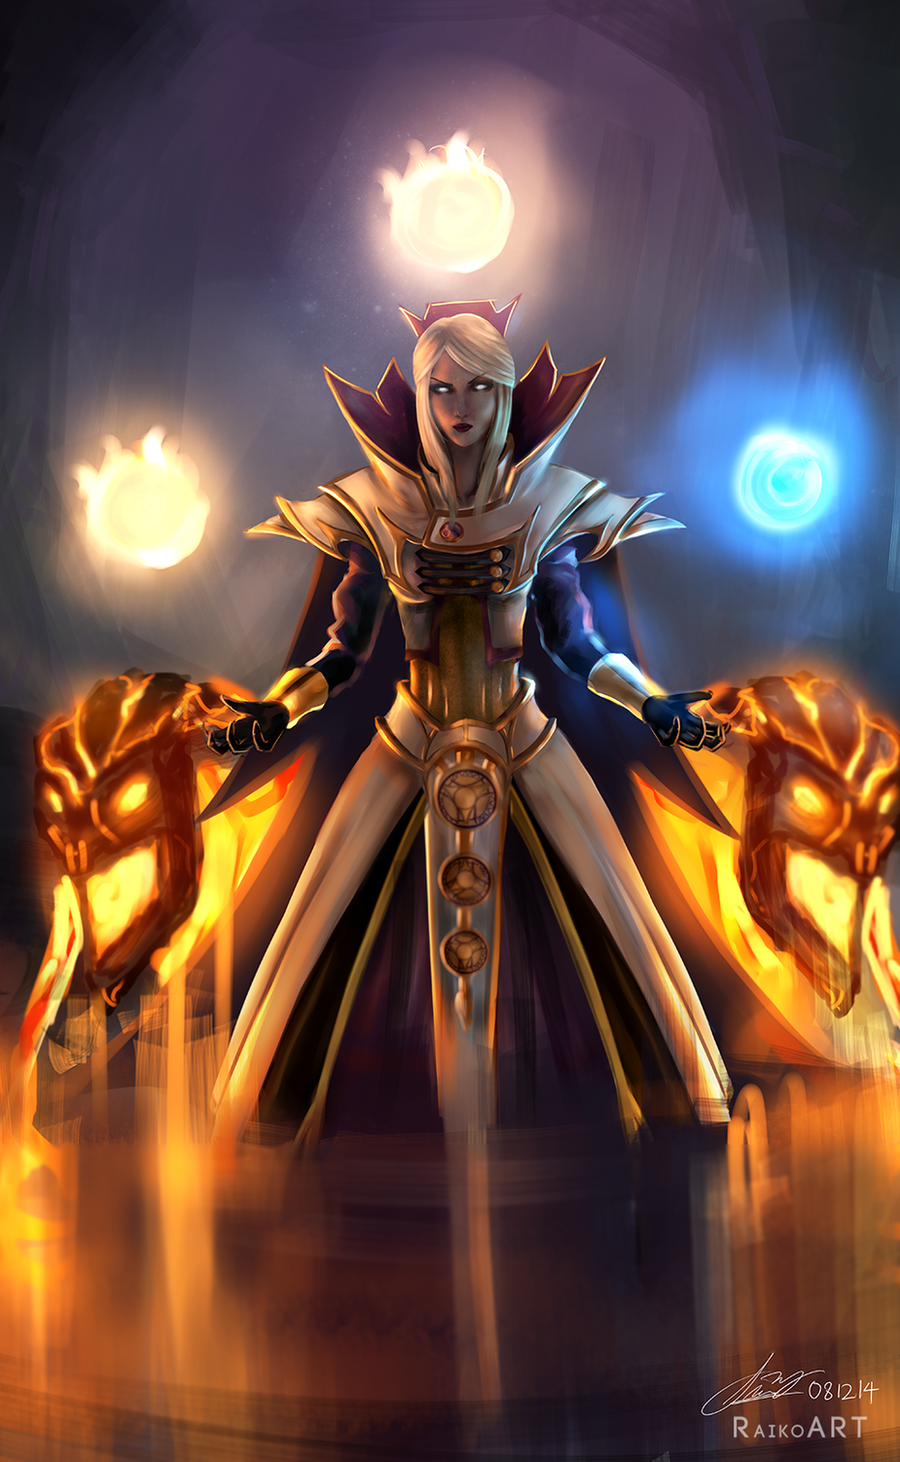 The Biggest One I Think Is Invoker